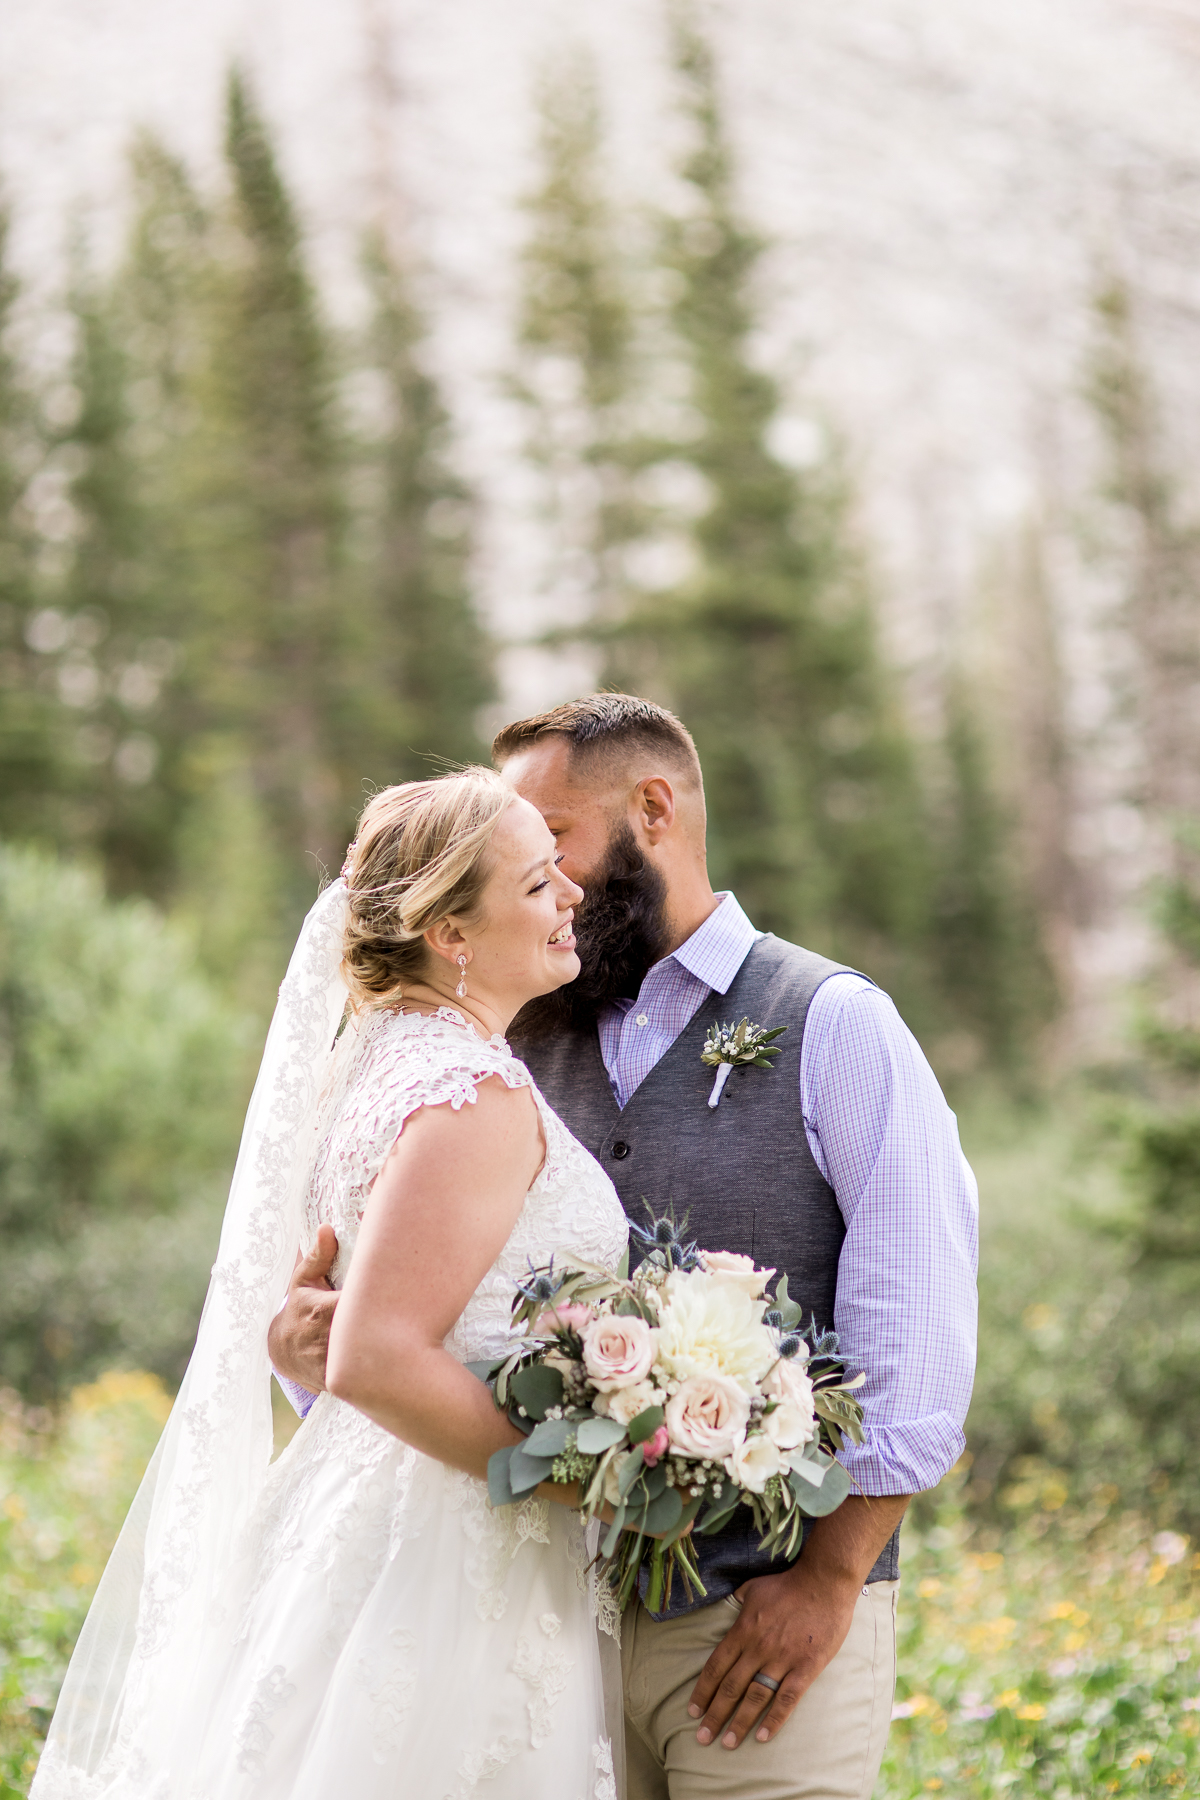 Formal portraits at elopement at Lake Marie by Laramie based photographer, Megan Lee Photography